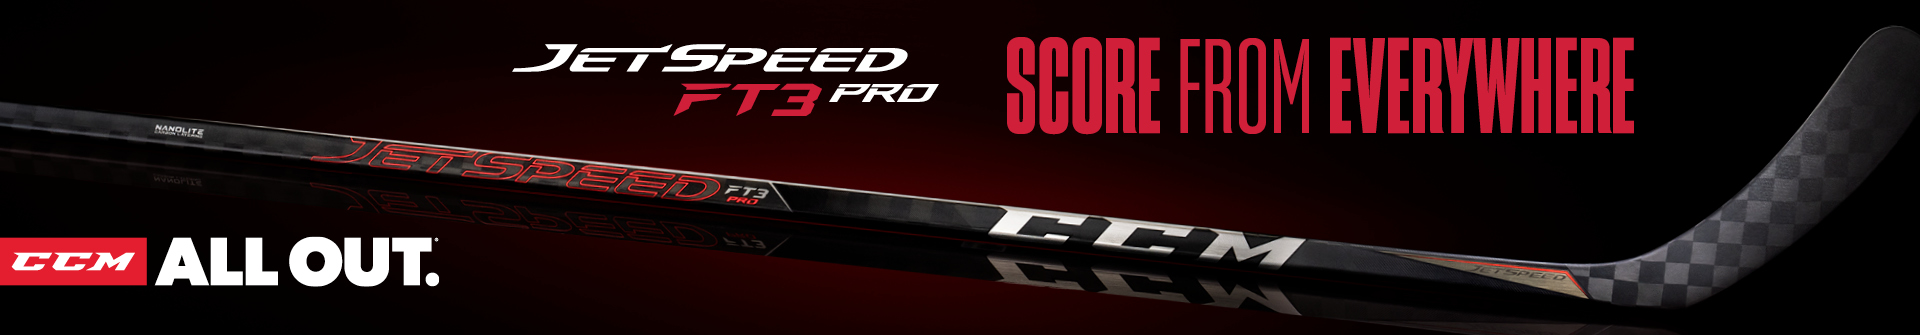 Shop The CCM JetSpeed FT3 Pro Hockey Stick & Other JetSpeed Sticks Available For Sale In Store & Online At Your Local Source For Sports Store Near You.